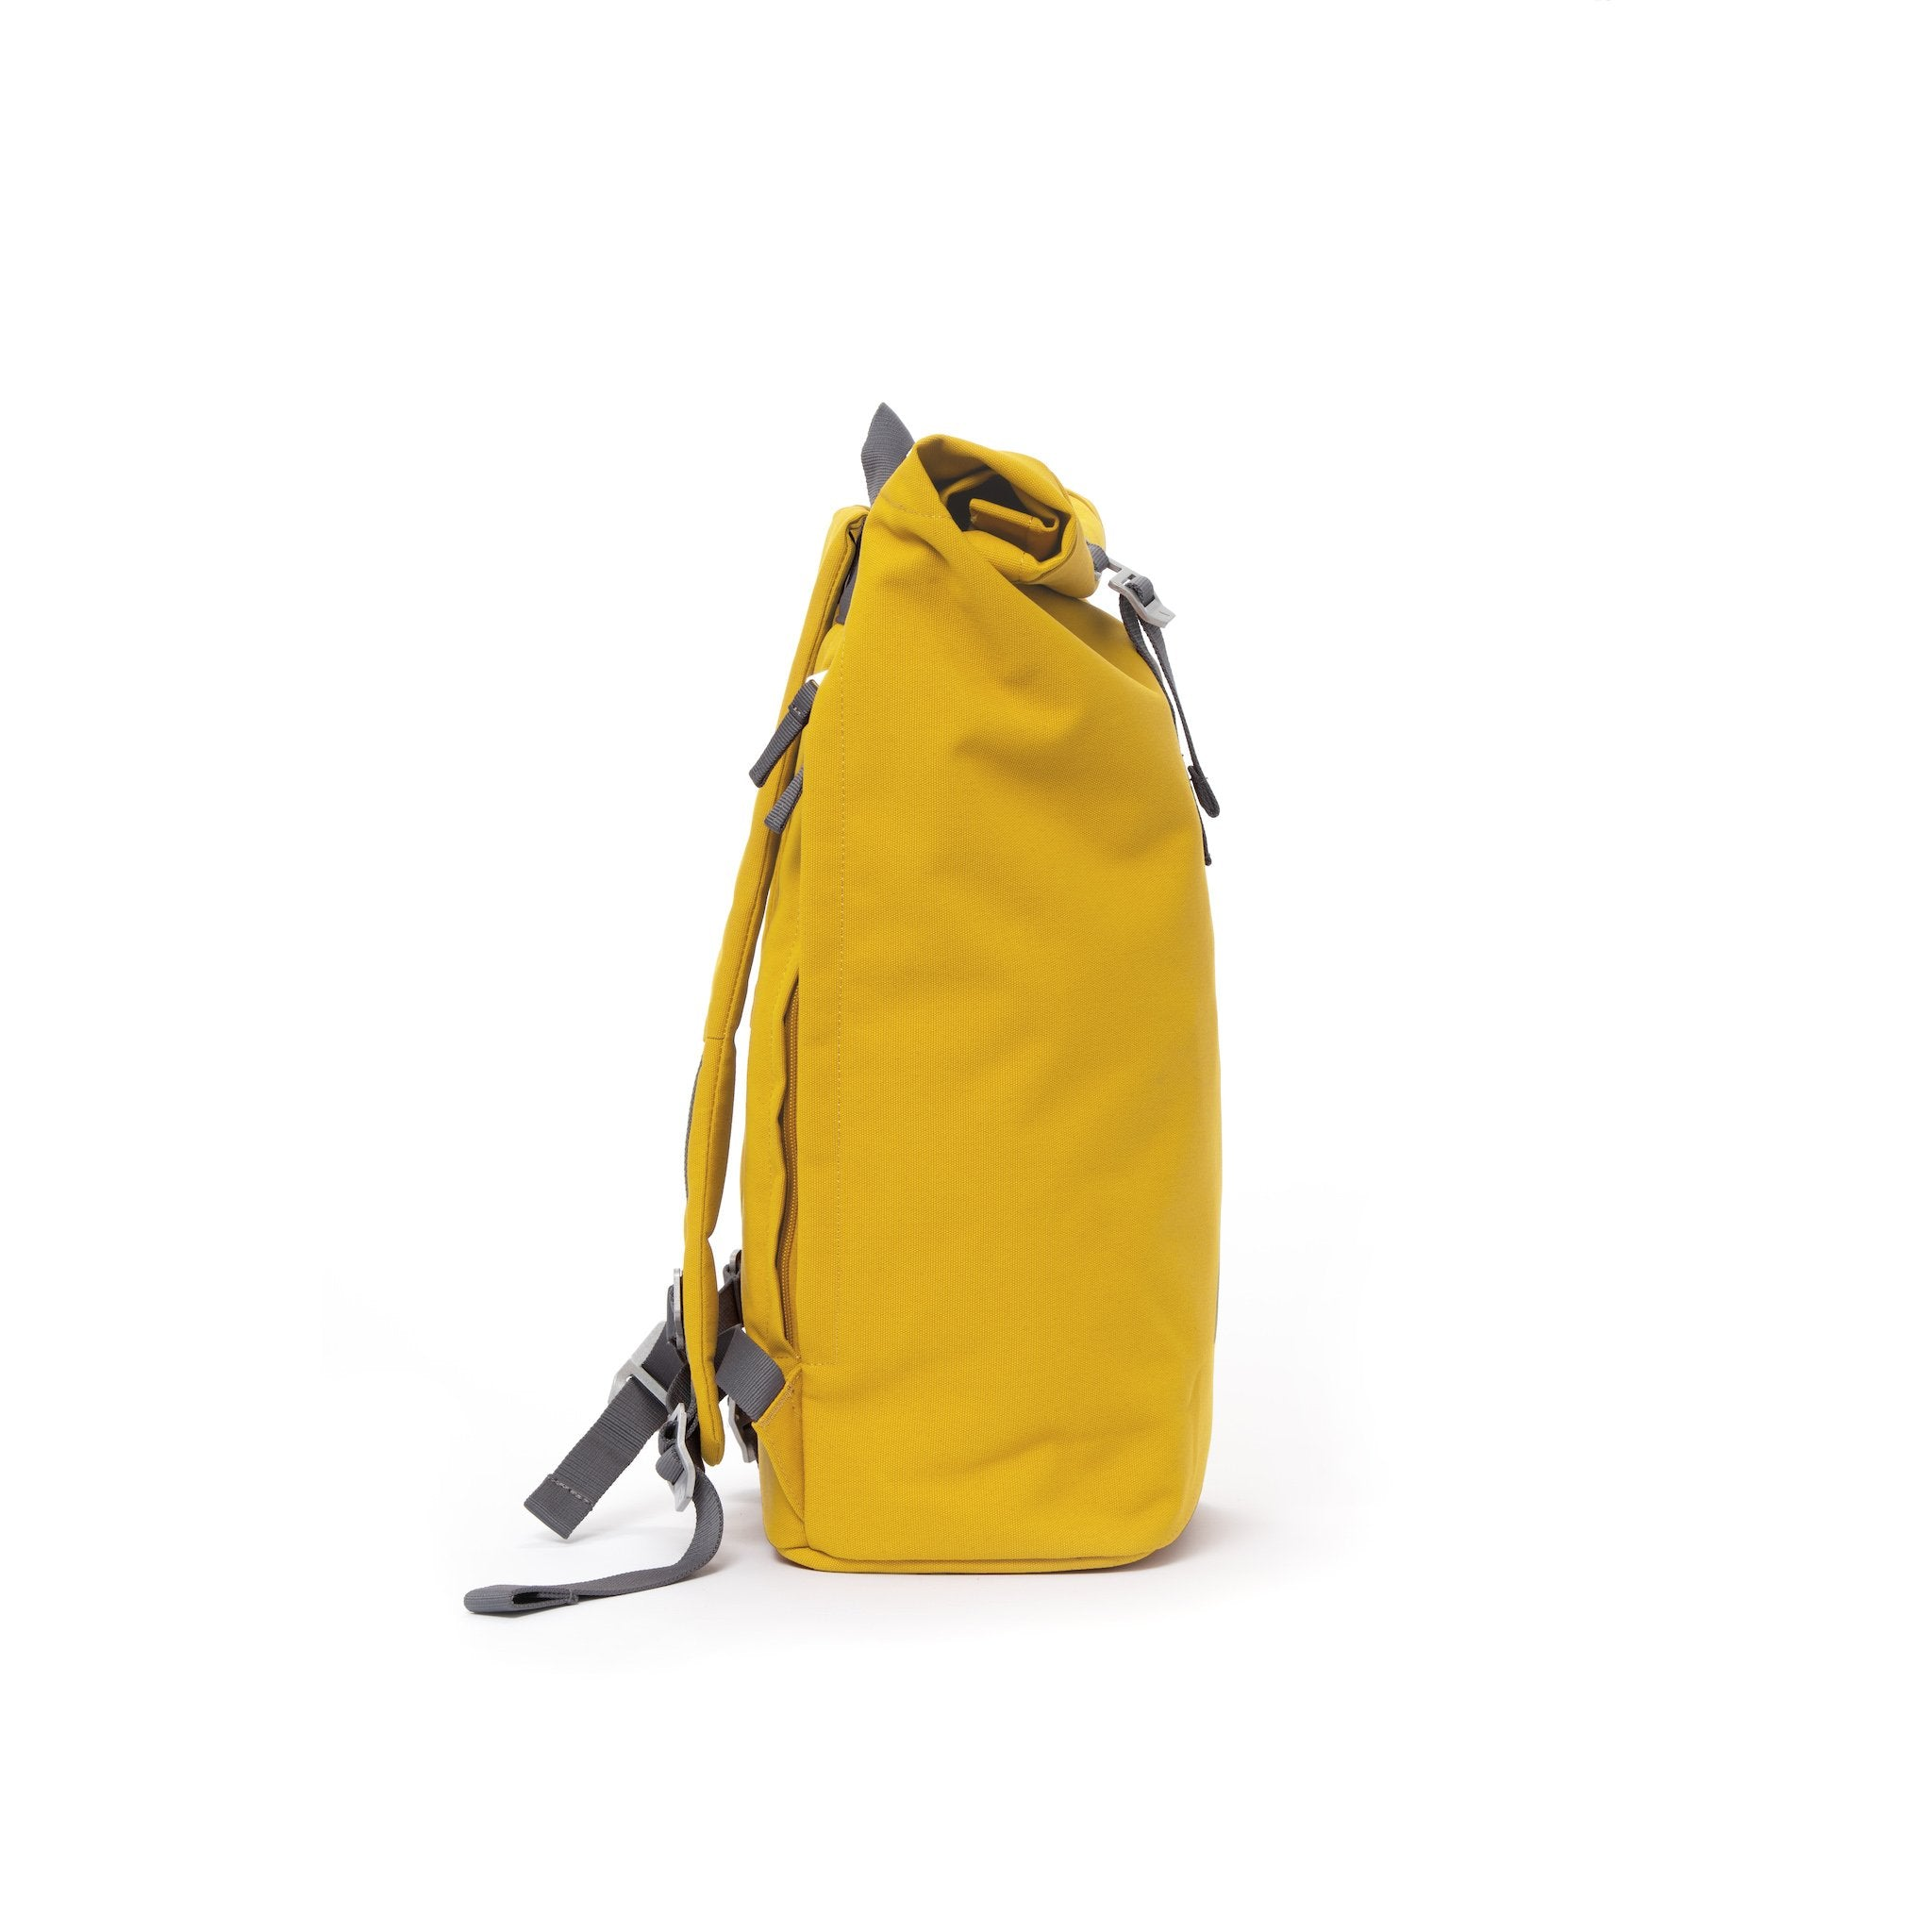 Yellow waterproof canvas men's rolltop backpack.